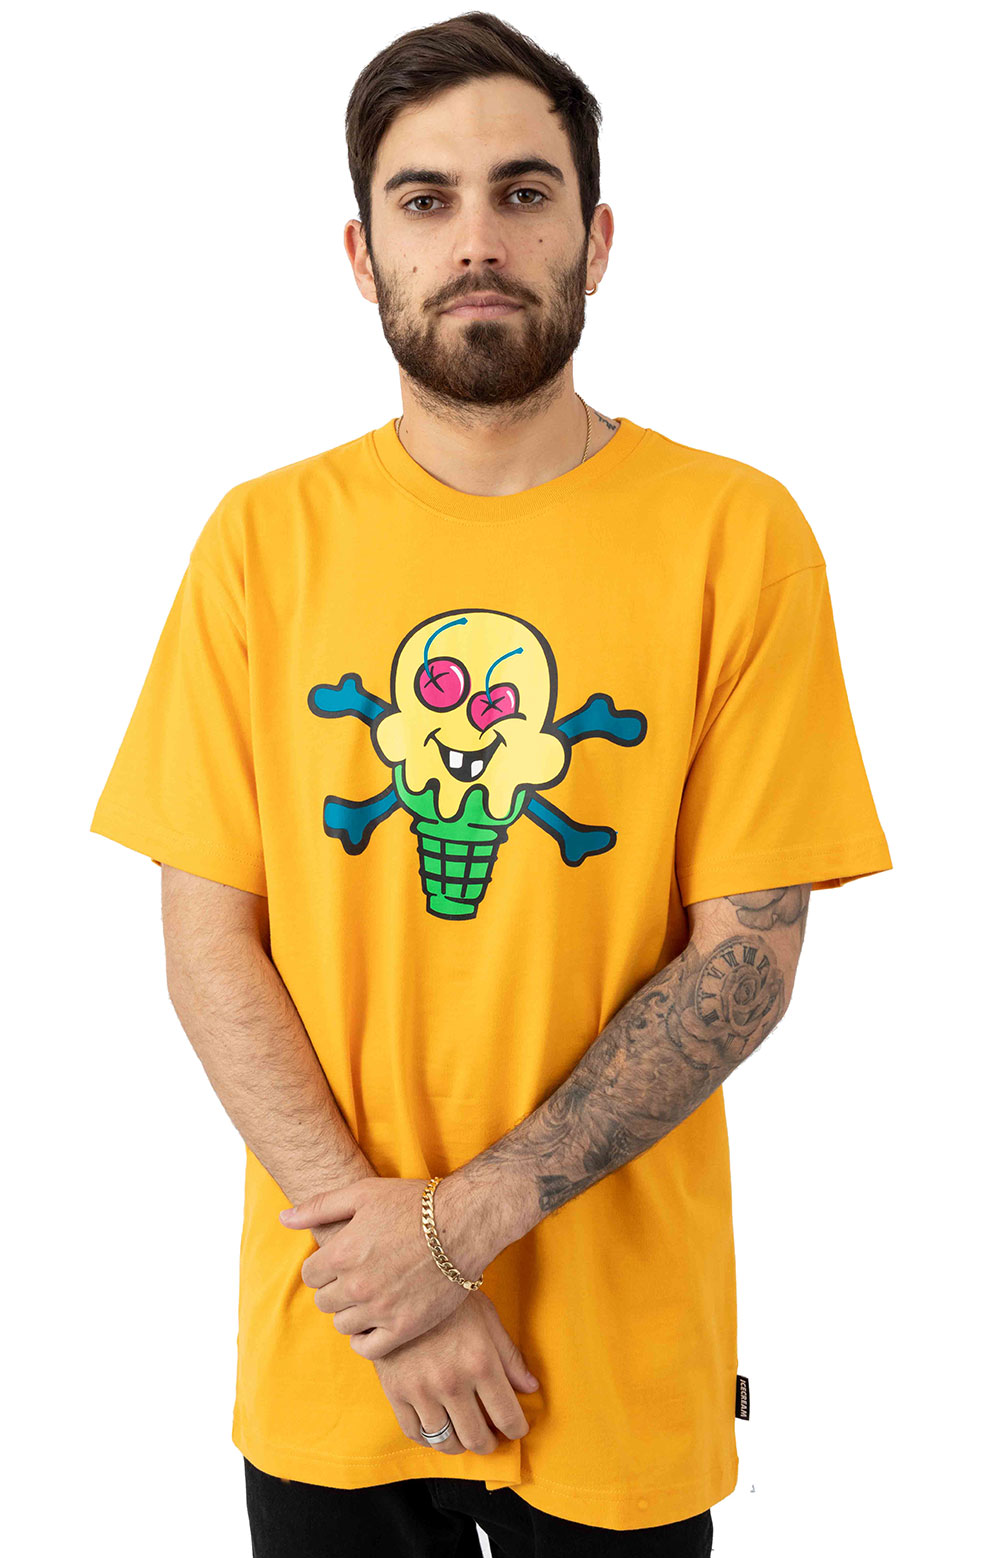 Buds T-Shirt - Cadmium Yellow